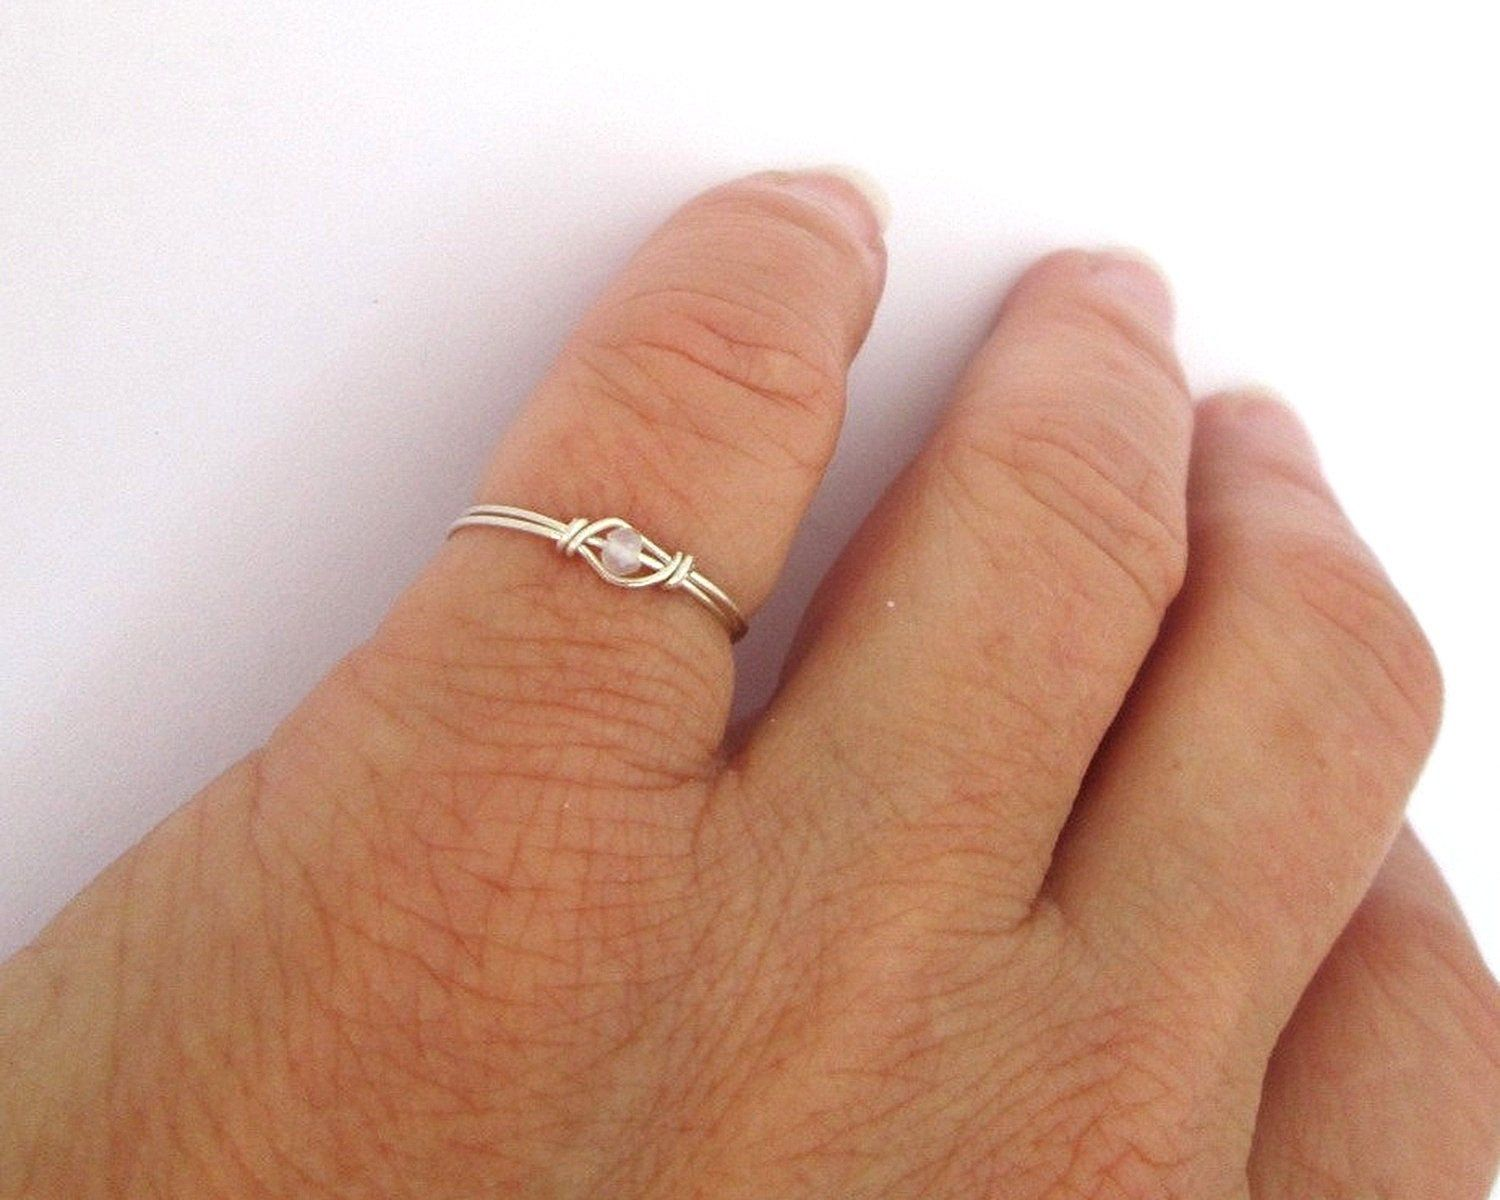 Ring Sterling Silver Filled     sizes 3-12 Thumb Ring